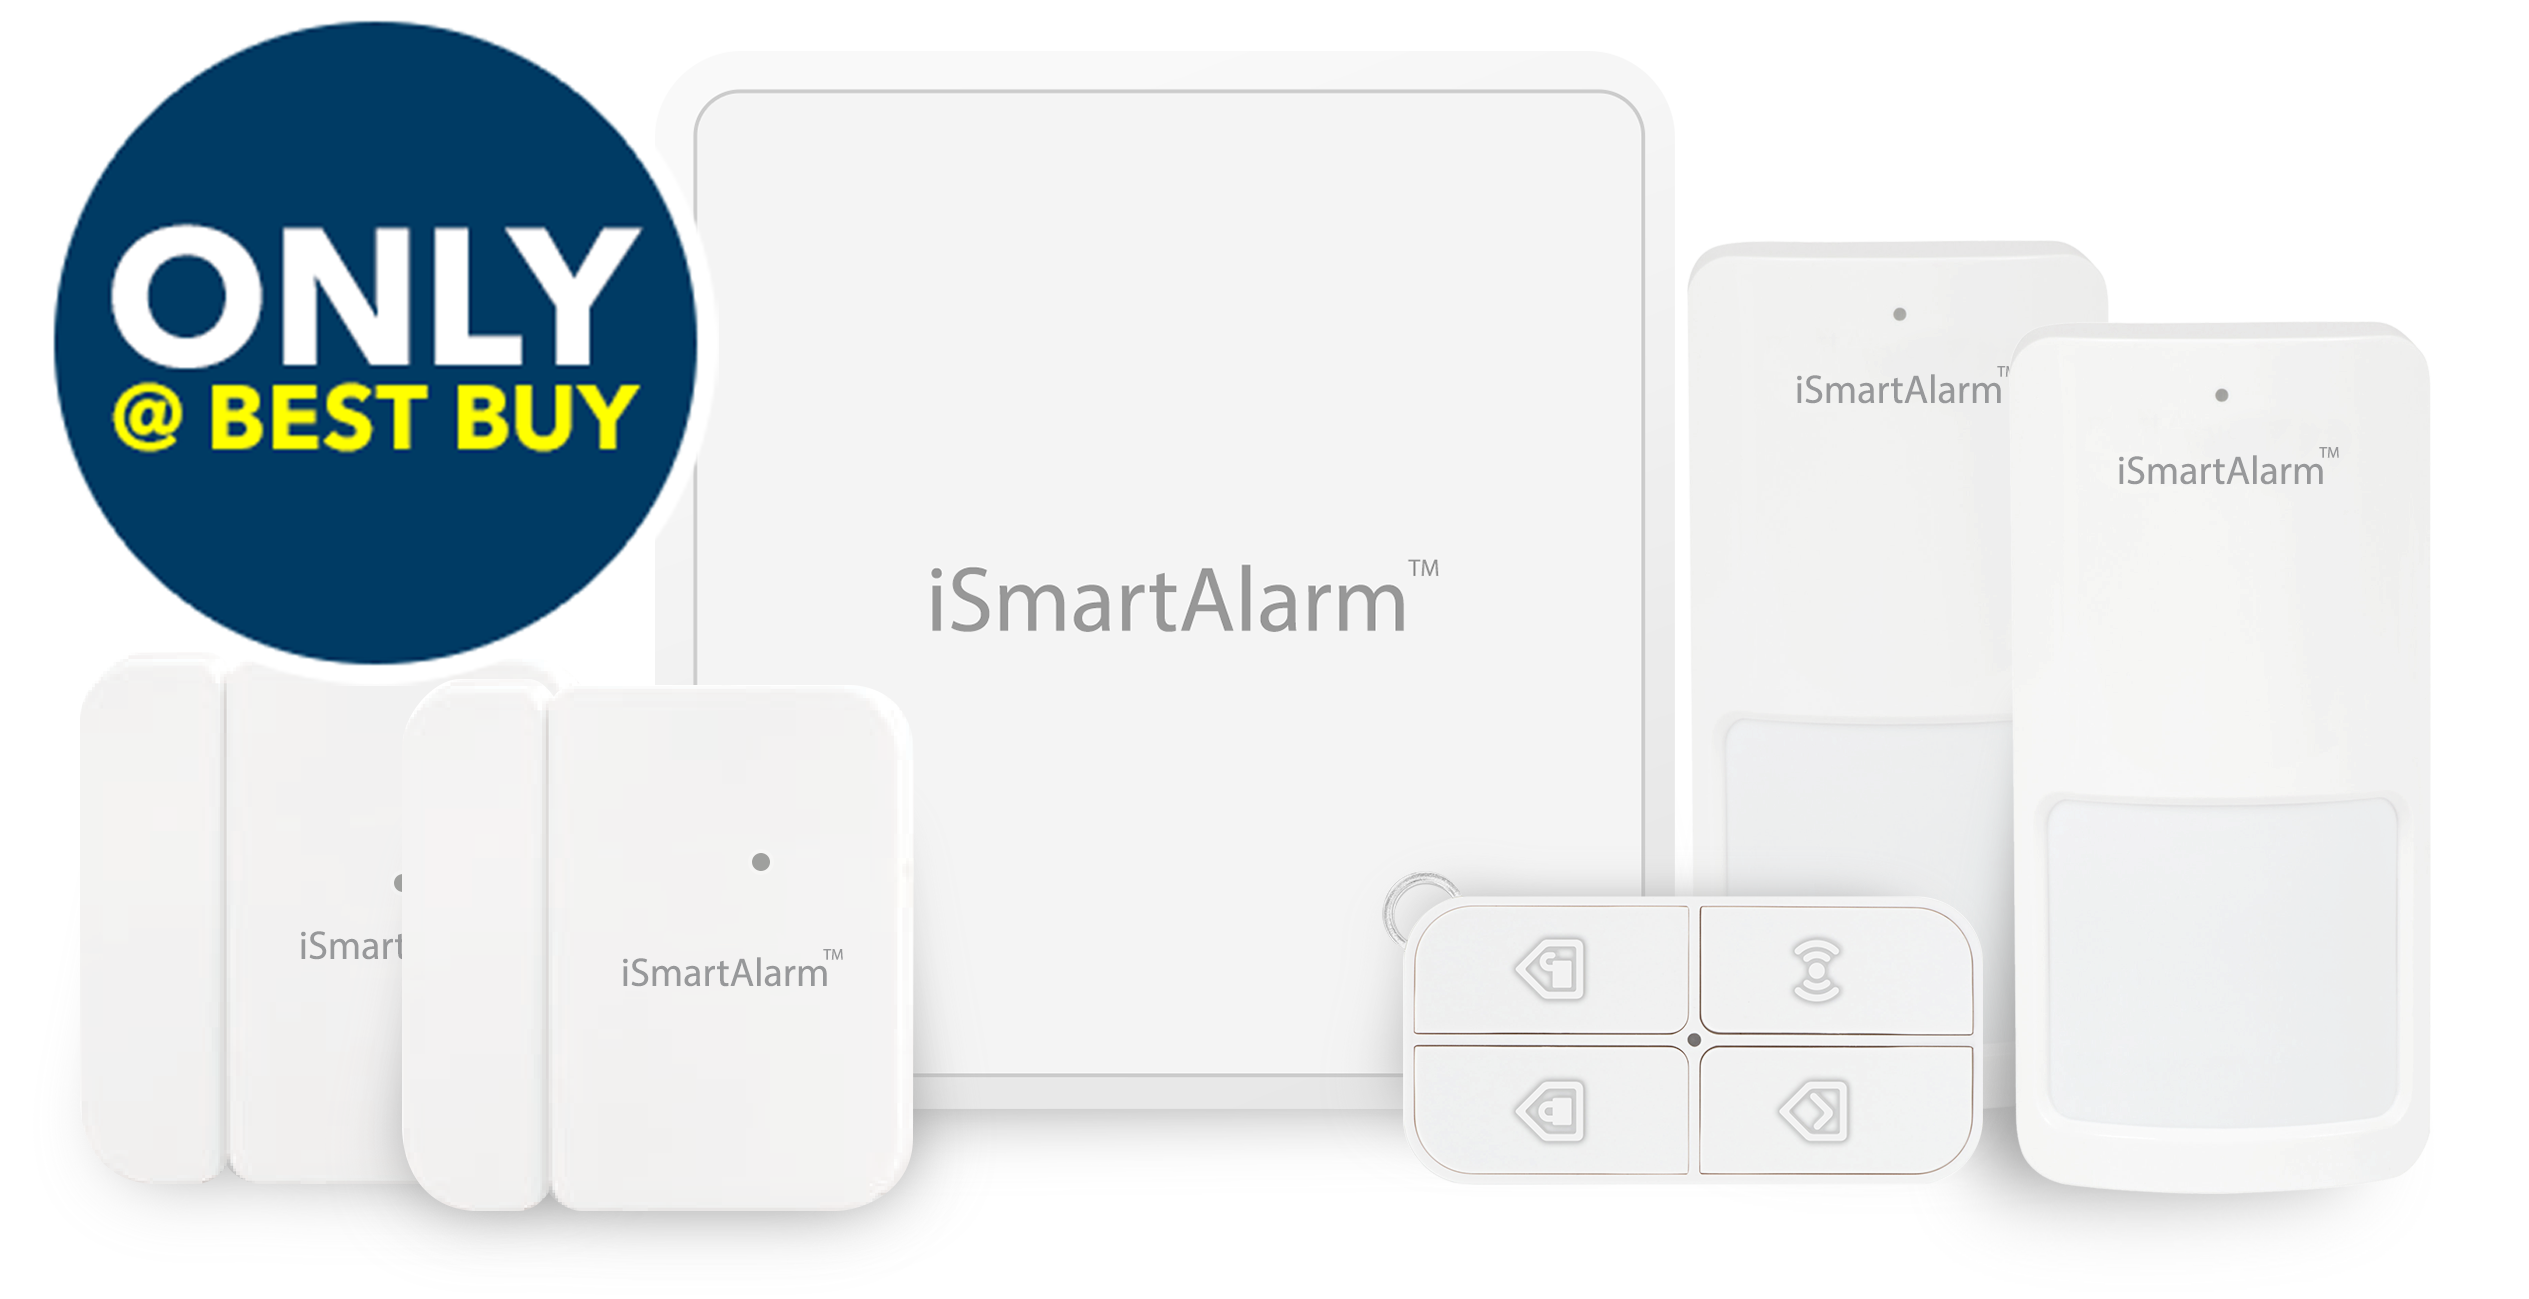 ismartalarm diy home security systems and devices now